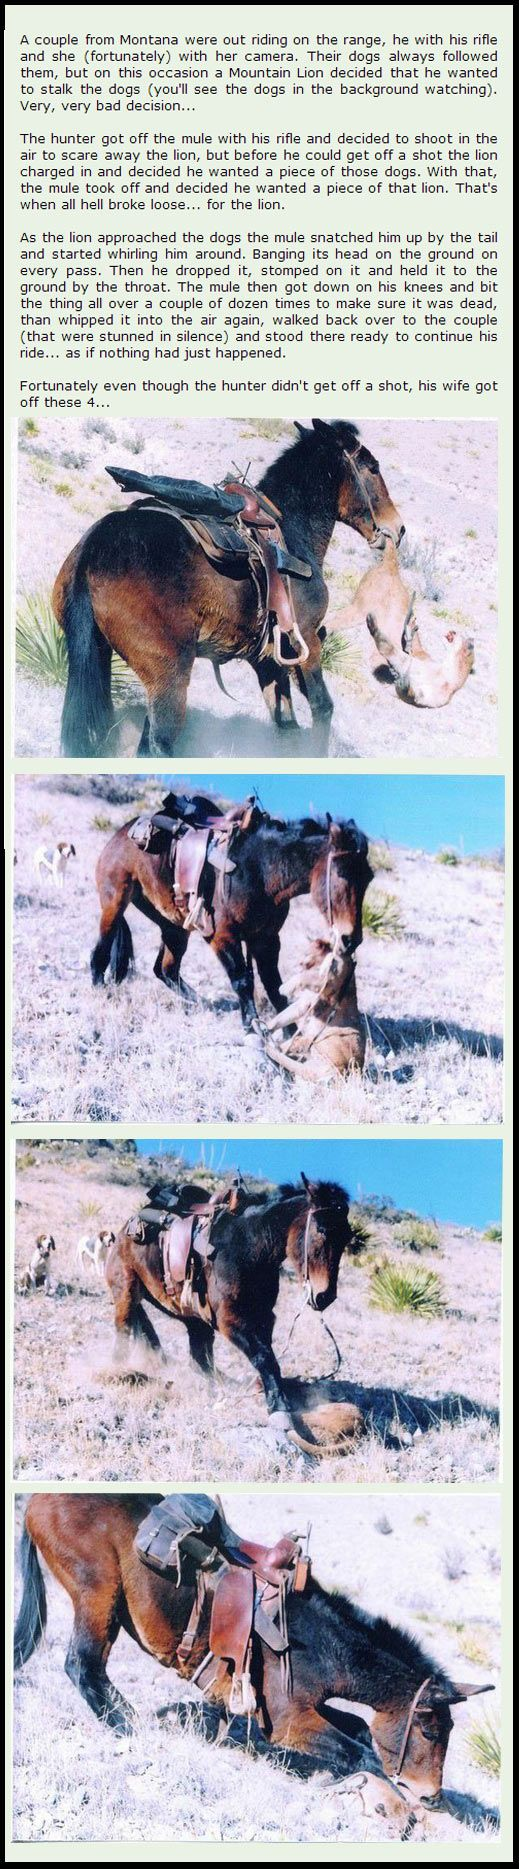 Badass mule. Living in the country, you learn to rely and trust your animals just as much as or more than other people.